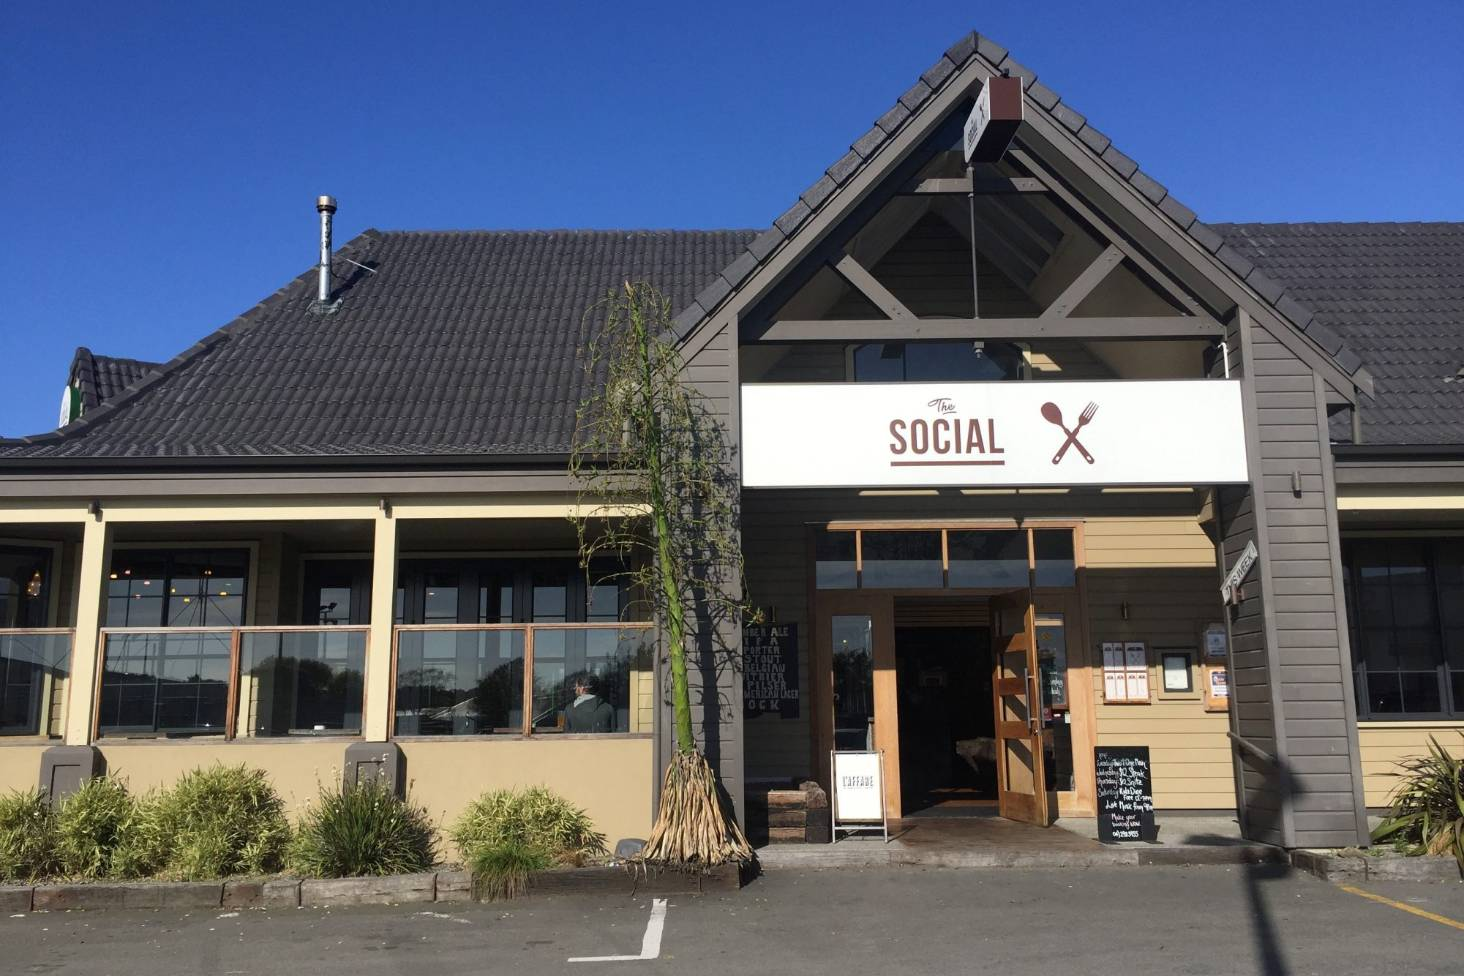 Restaurant owes workers, IRD $46k